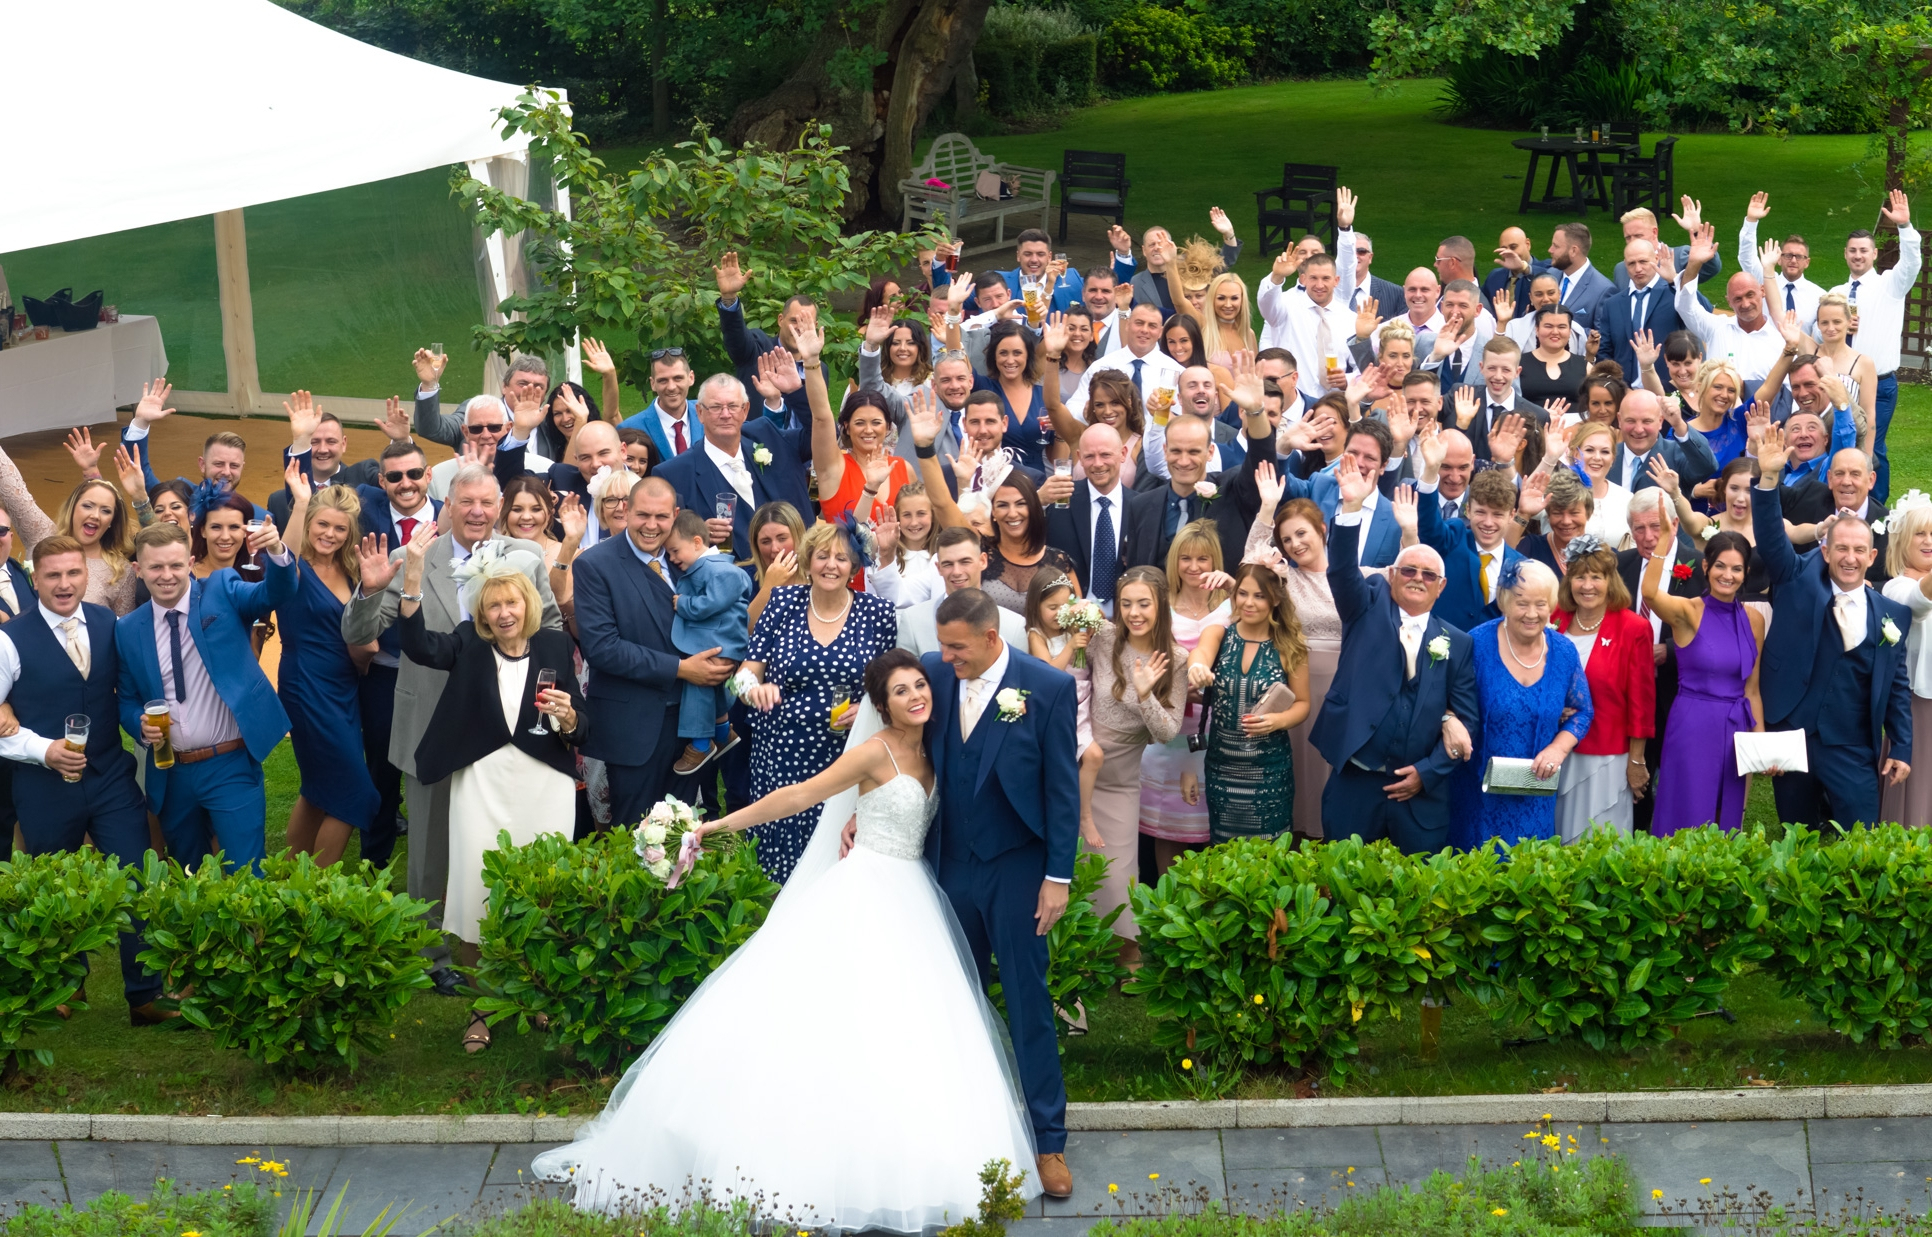 Christian and Rebecca's wedding, at the Kinmel in Abergele